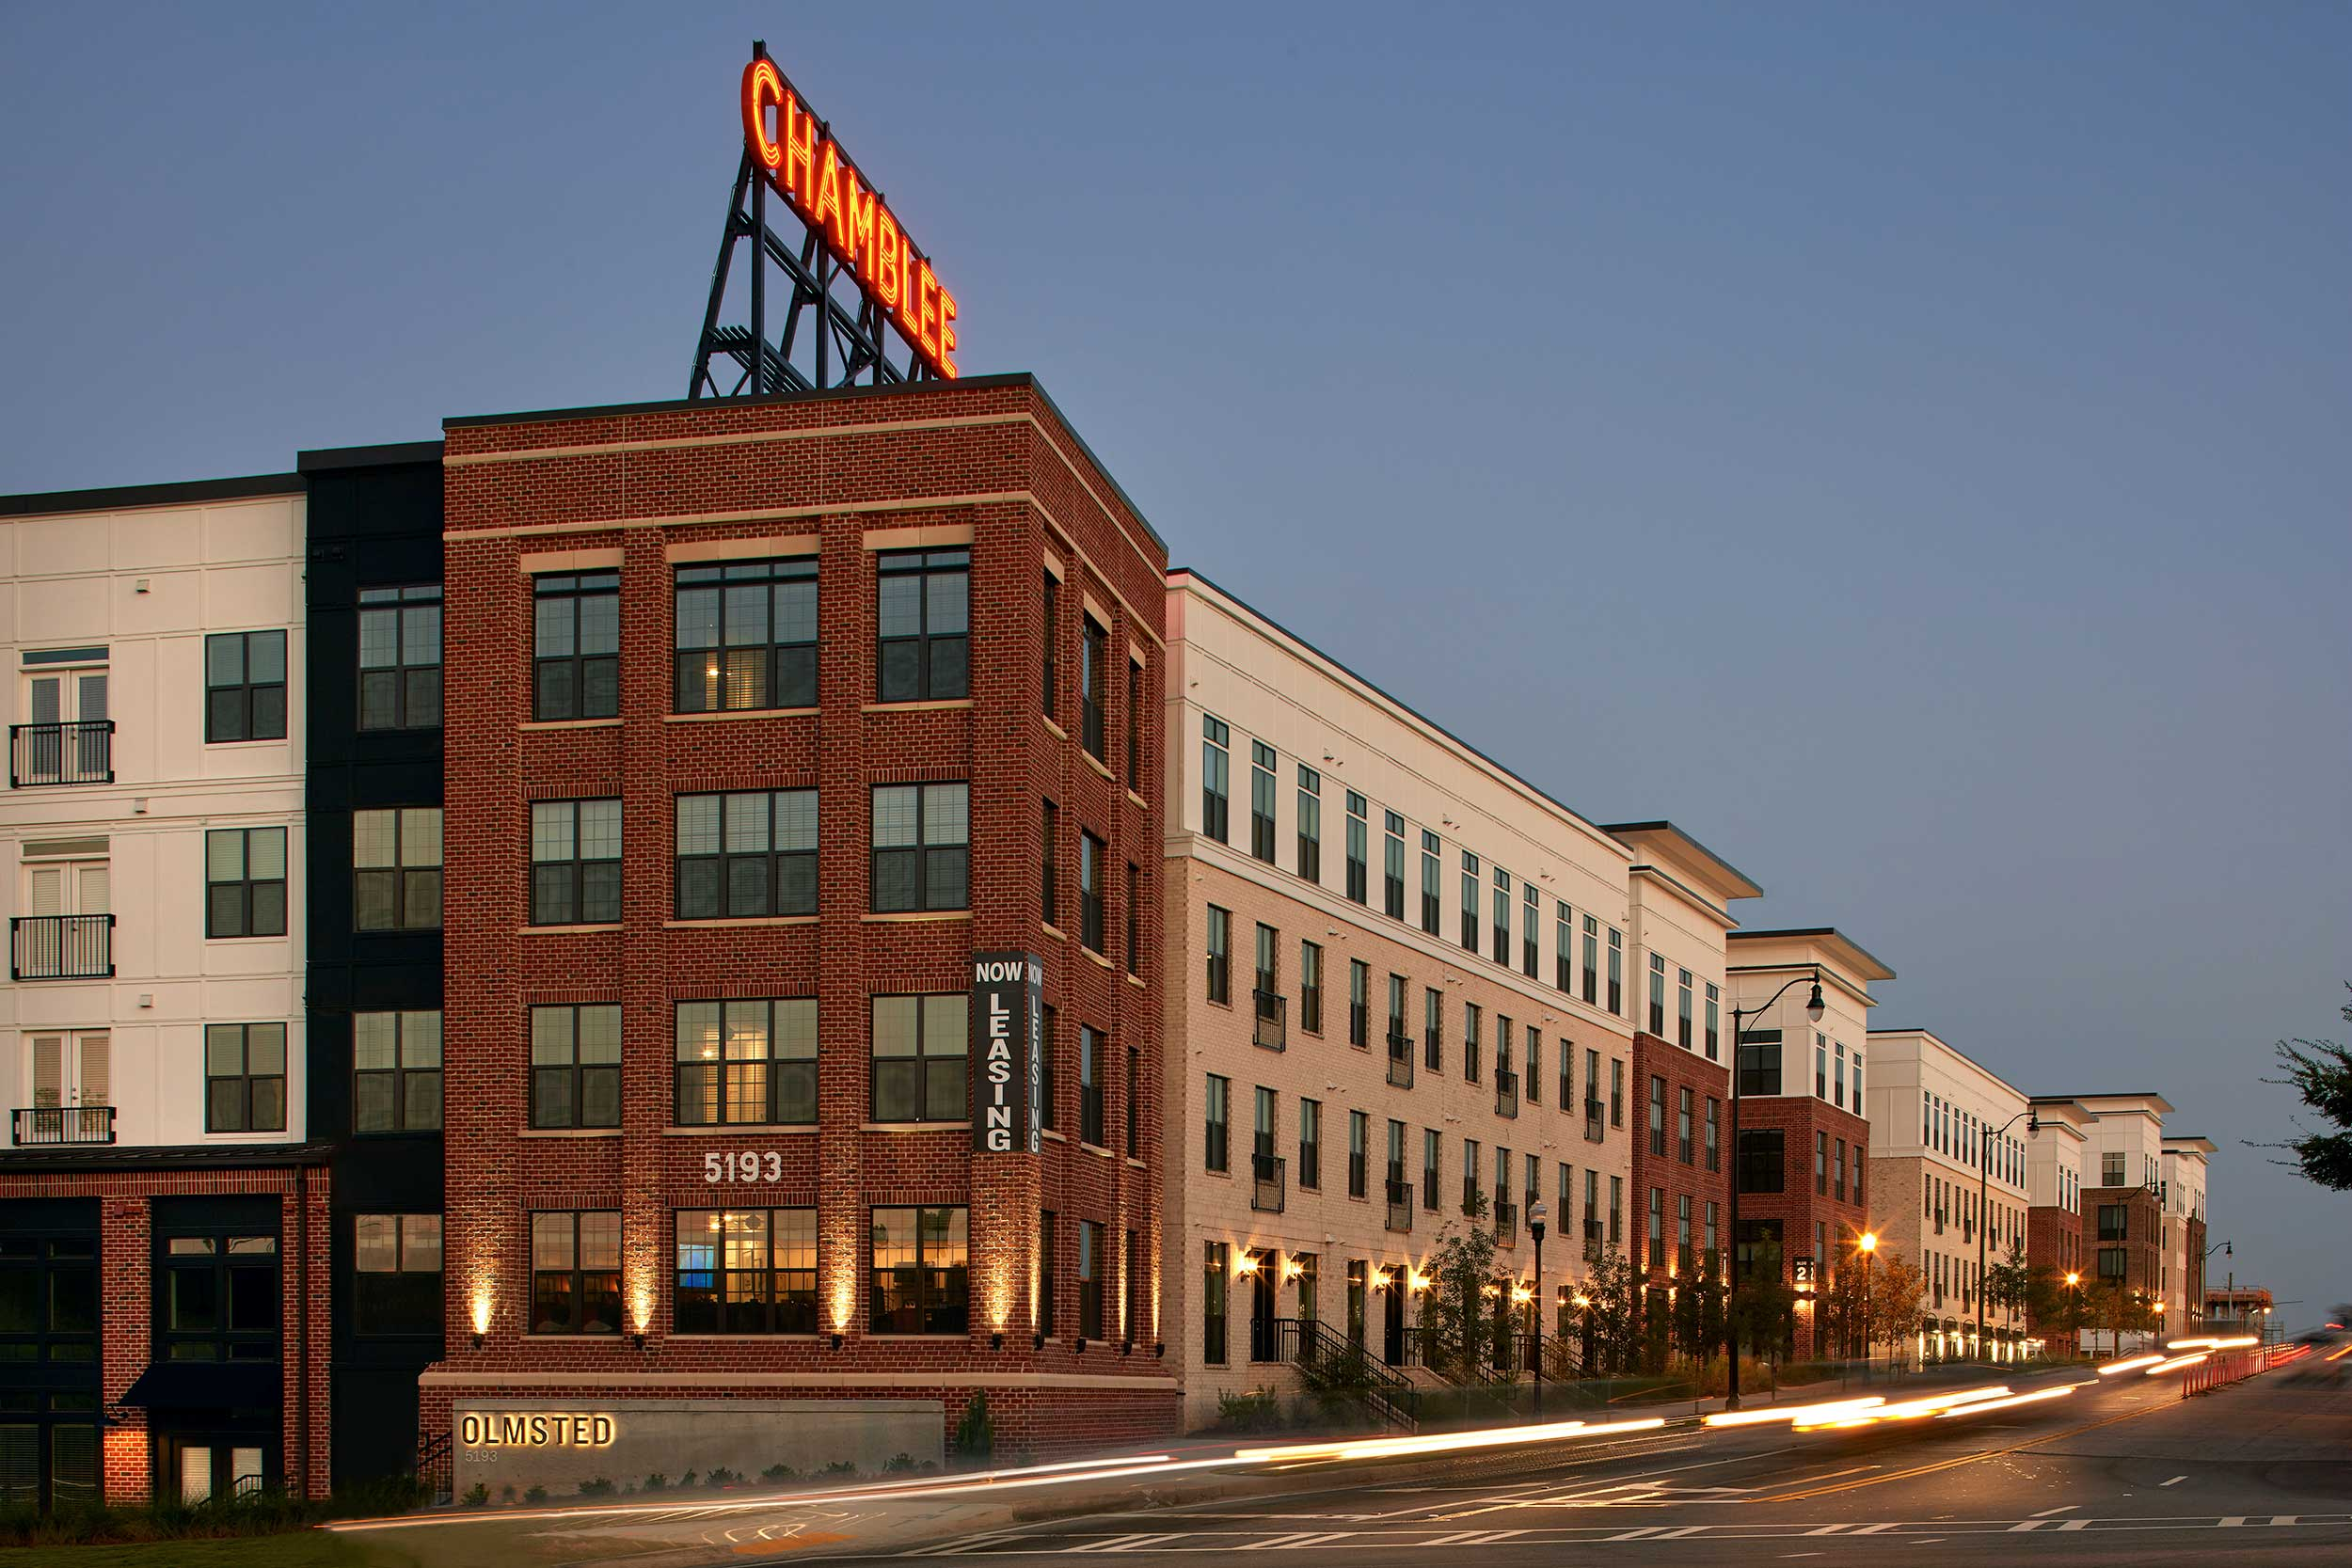 This mixed use project in Chamblee, Georgia is called The Olmsted, but the retro rooftop signage proclaims your arrival to the gateway of this happening metro Atlanta city.